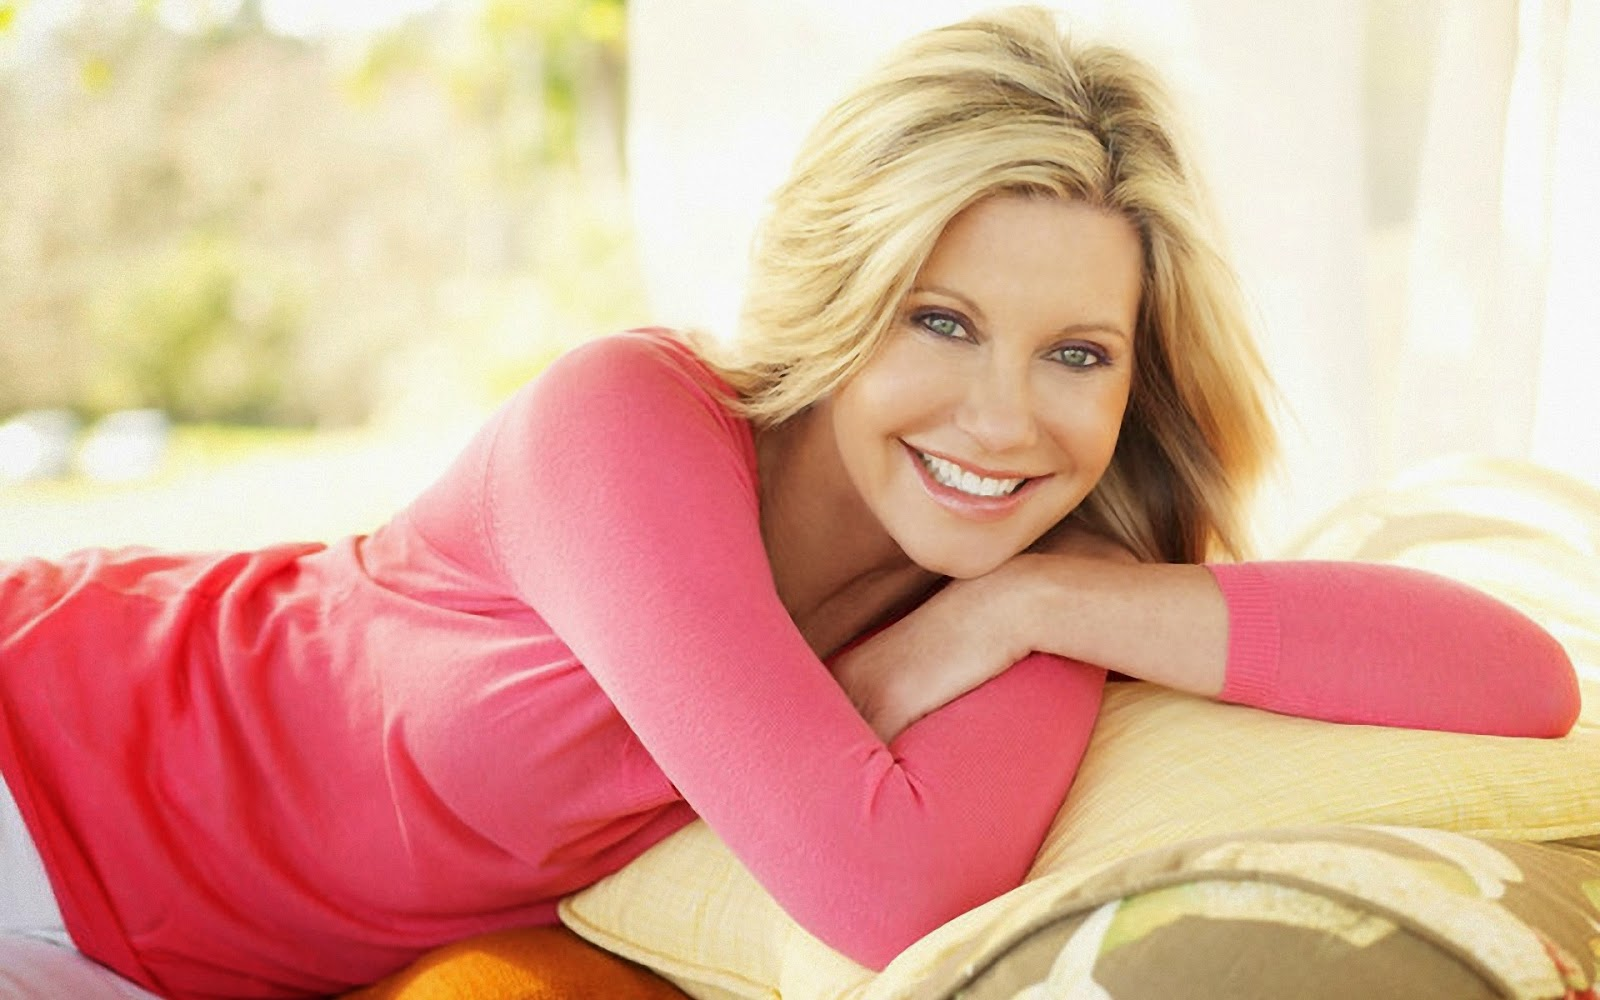 Olivia Newton-John is a British-born Australian singer, songwriter, and actress.http://www.jinglejanglejungle.net/2015/01/onj.html #OliviaNewtonJohn